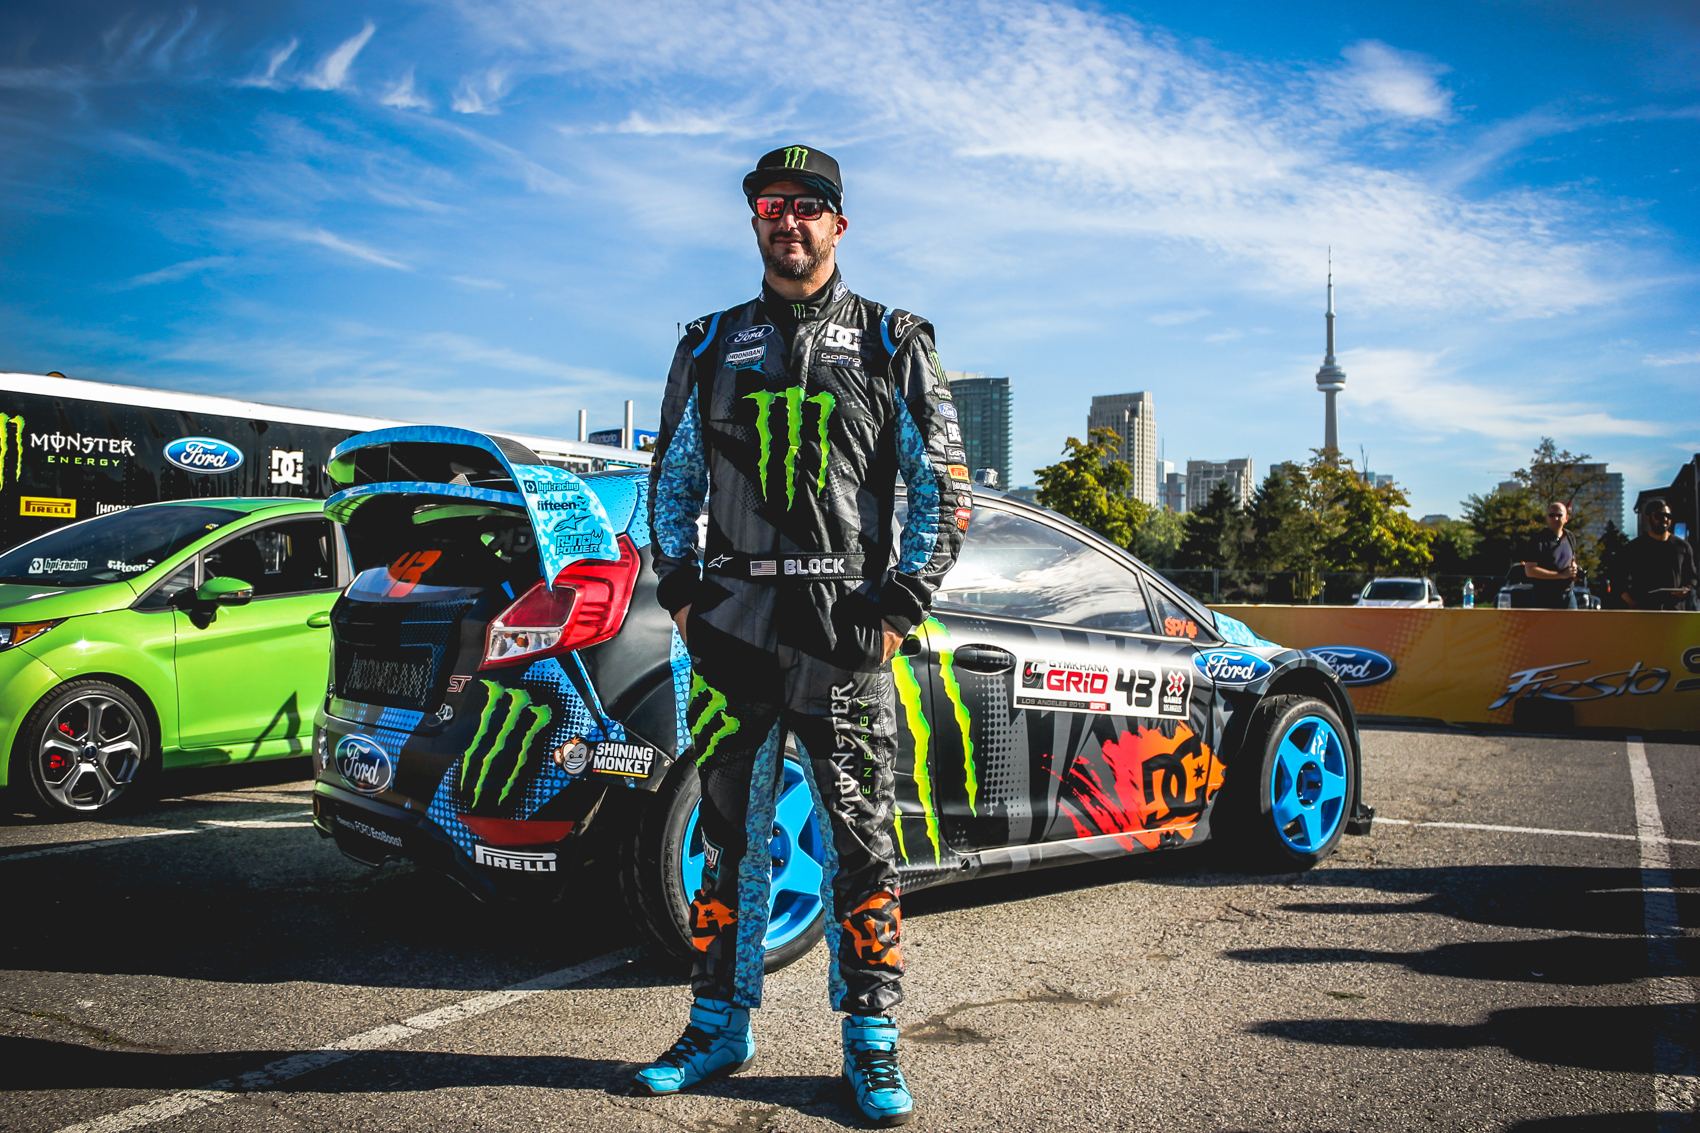 IMG_1825-Ken Block Toronto_colour.jpg